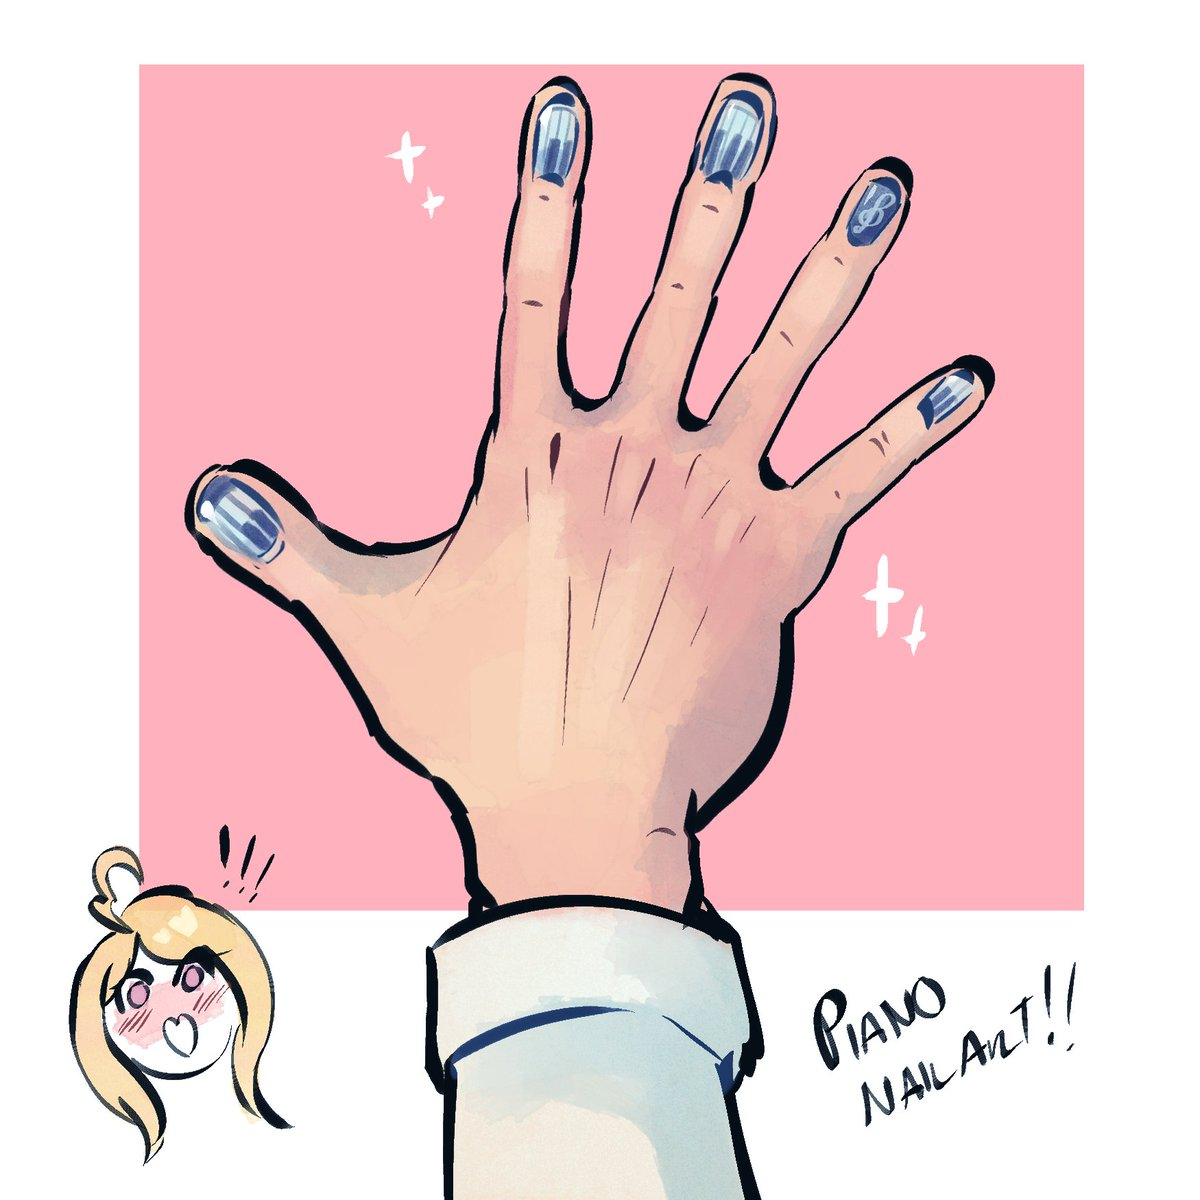 [ndrv3] kicking off #kaemugiweek2018 with a manicure!! tsumugi wanted to make up for last time